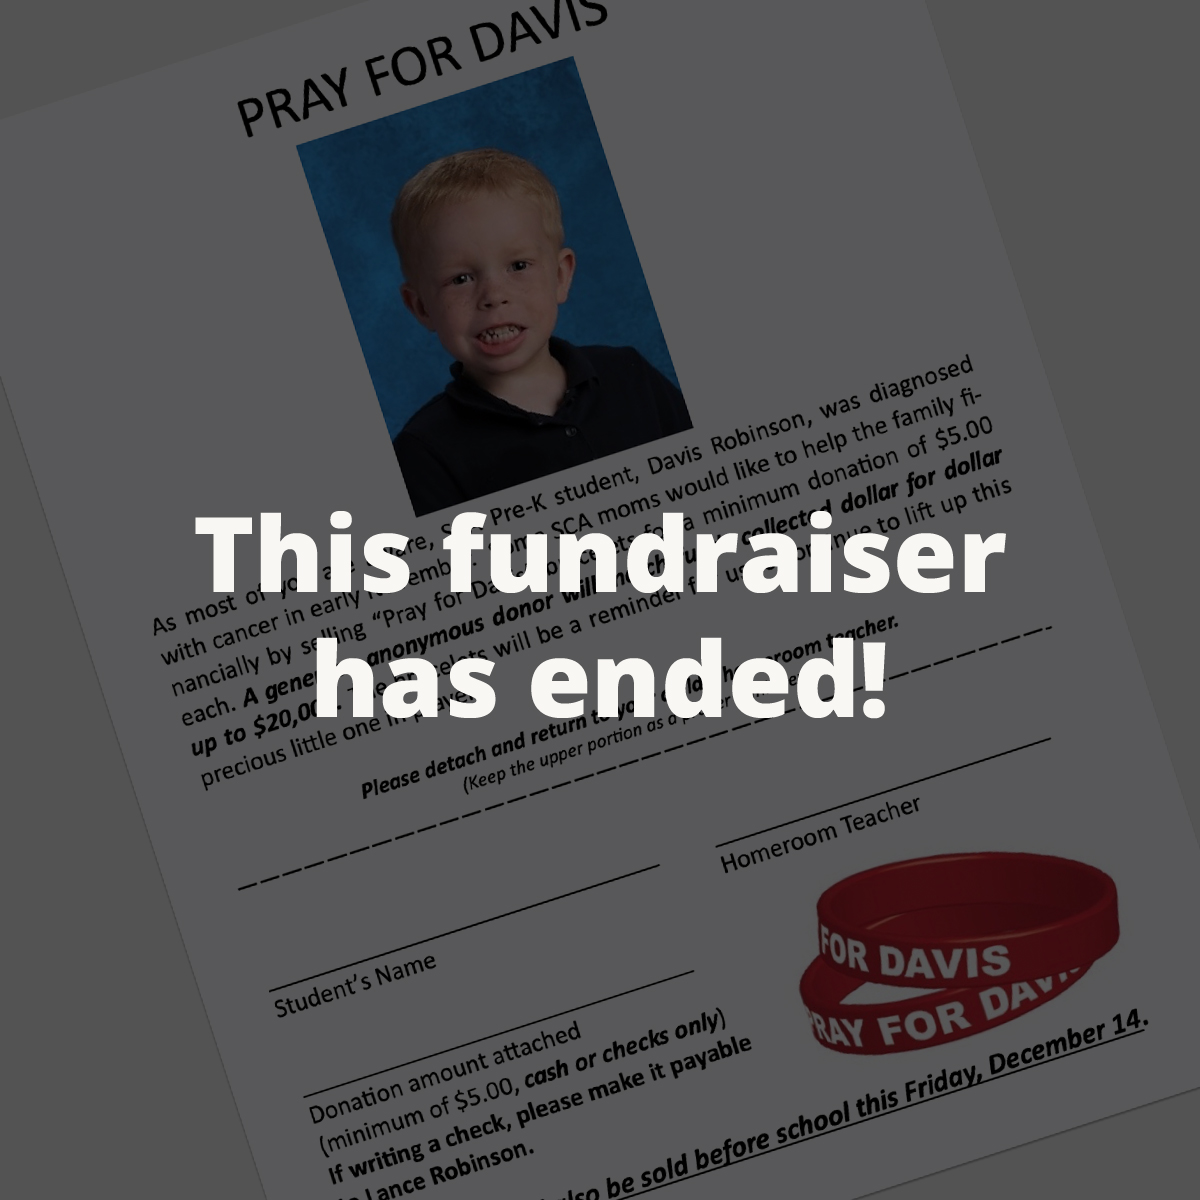 SCA FAMILY: Bracelet Fundraiser - Purchase a Pray for Davis bracelet and donations made up to $20,000 will be matched dollar-for-dollar for the Robinson's! Thank you to this anonymous donor for your generosity!